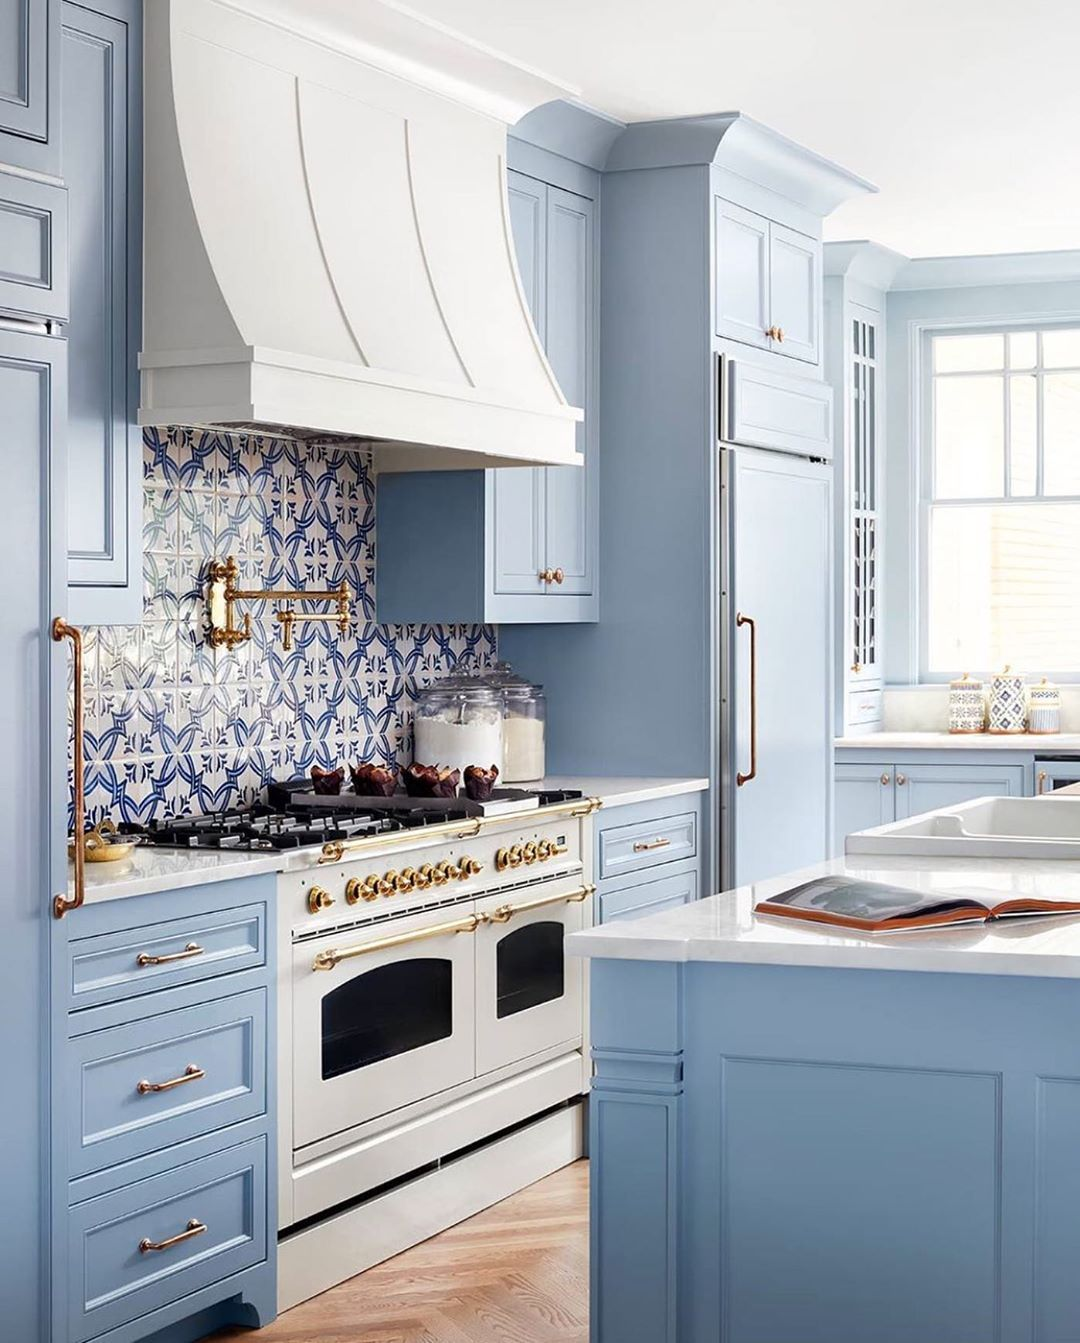 Splendor In The South On Instagram The Most Charming Blue And White Kitchen Via Astoriedstyle Classic White Kitchen Home Decor Kitchen Kitchen Design